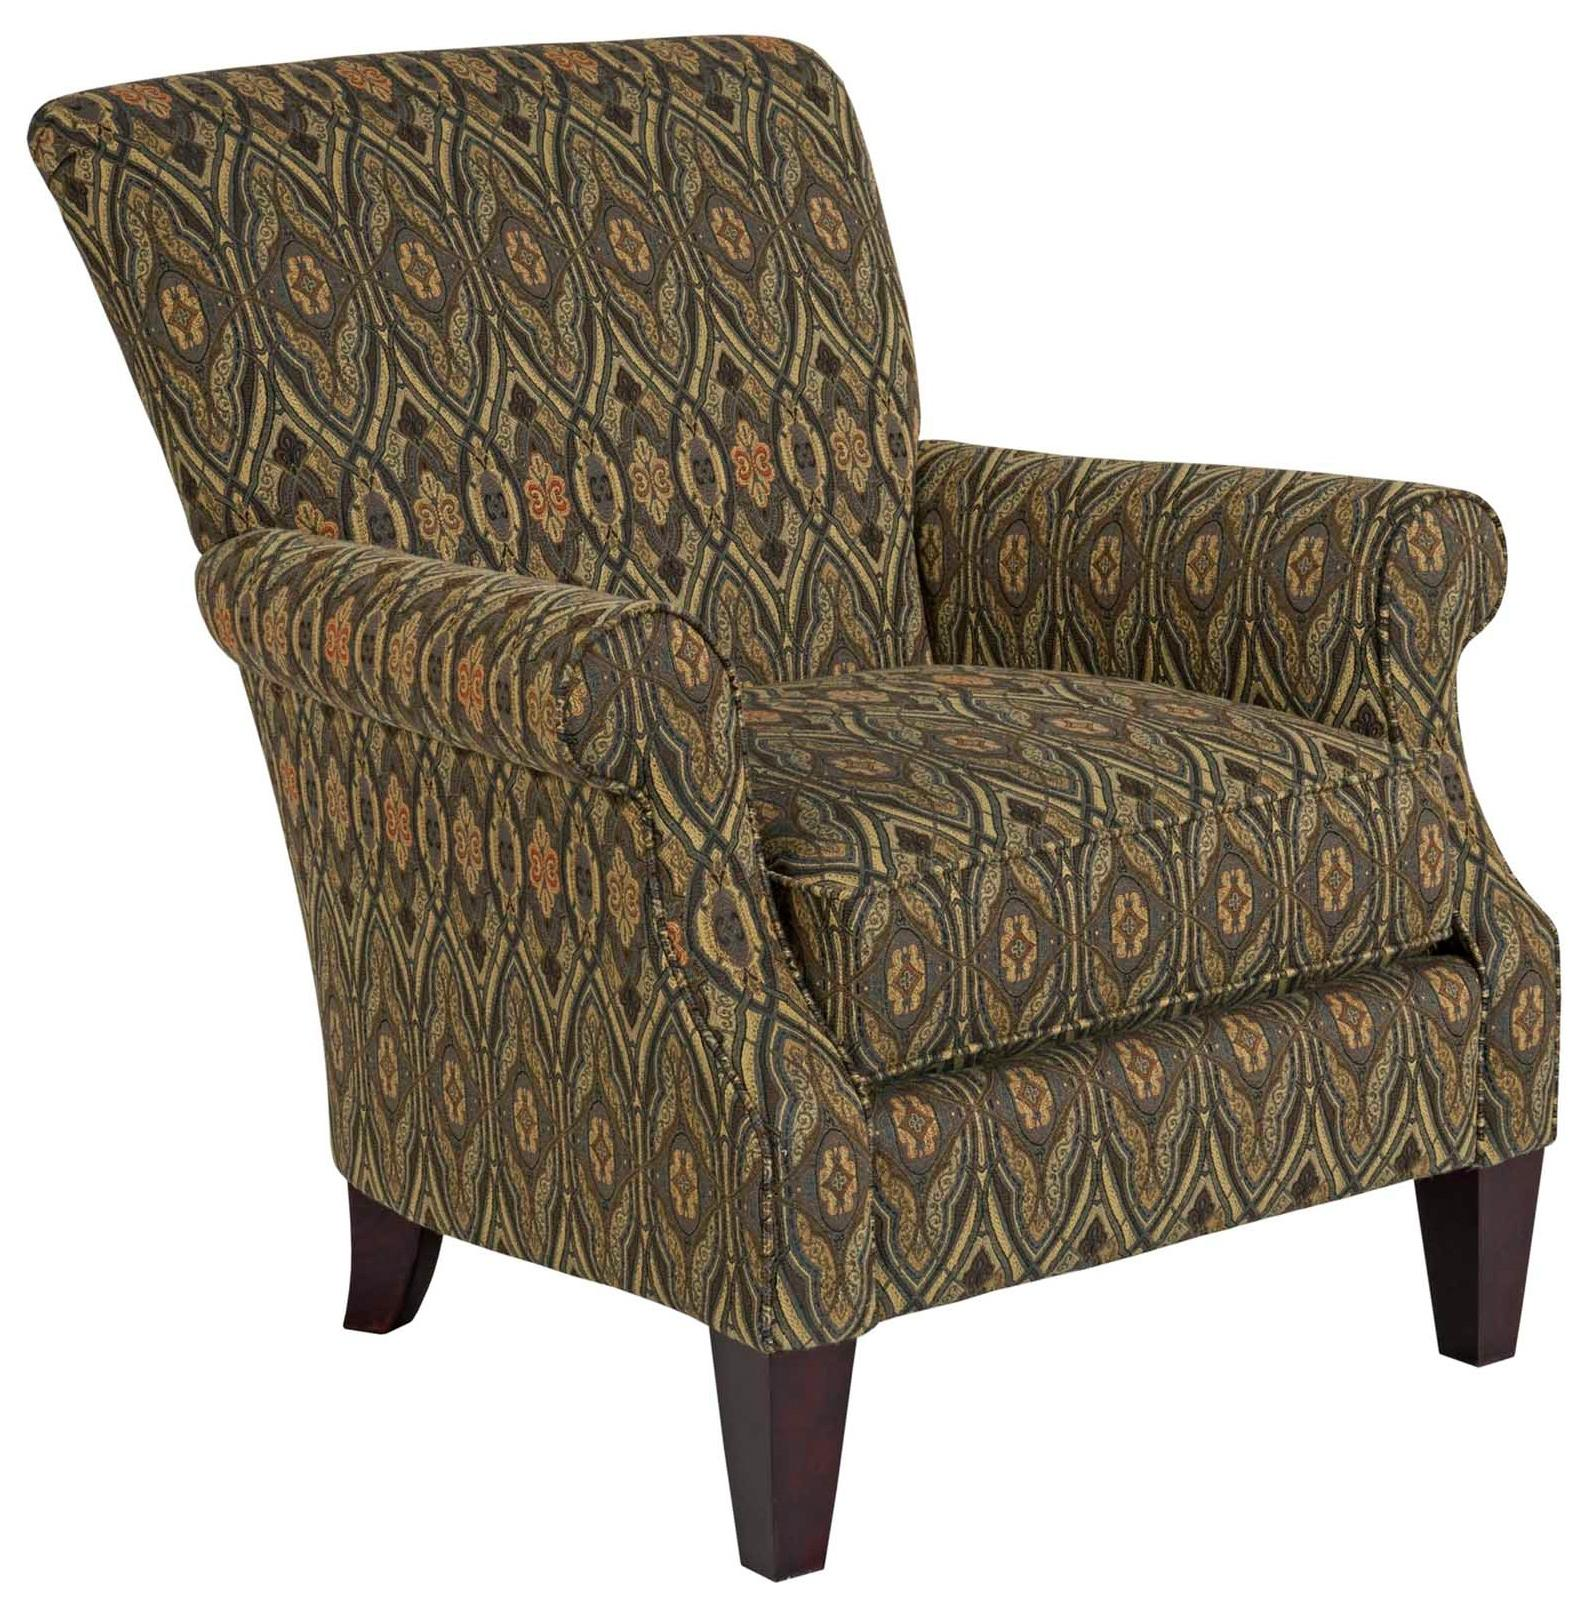 Broyhill Furniture Accent Chairs And Ottomans Jordan